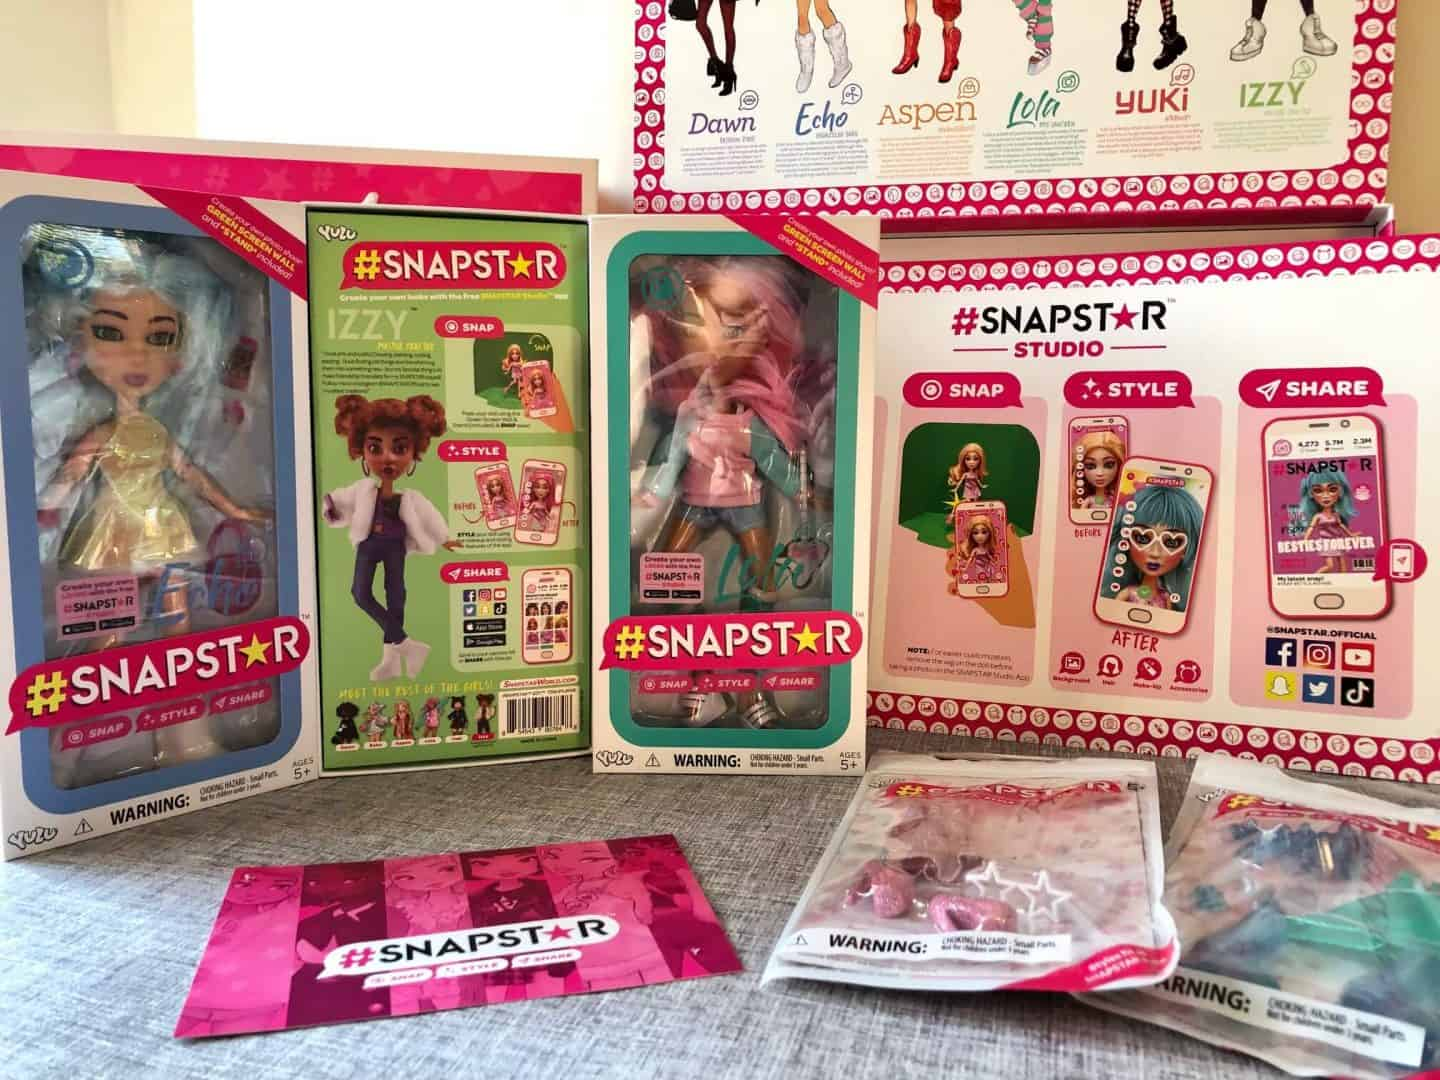 SNAPSTAR Dolls: Snap, Style, and Share - Review